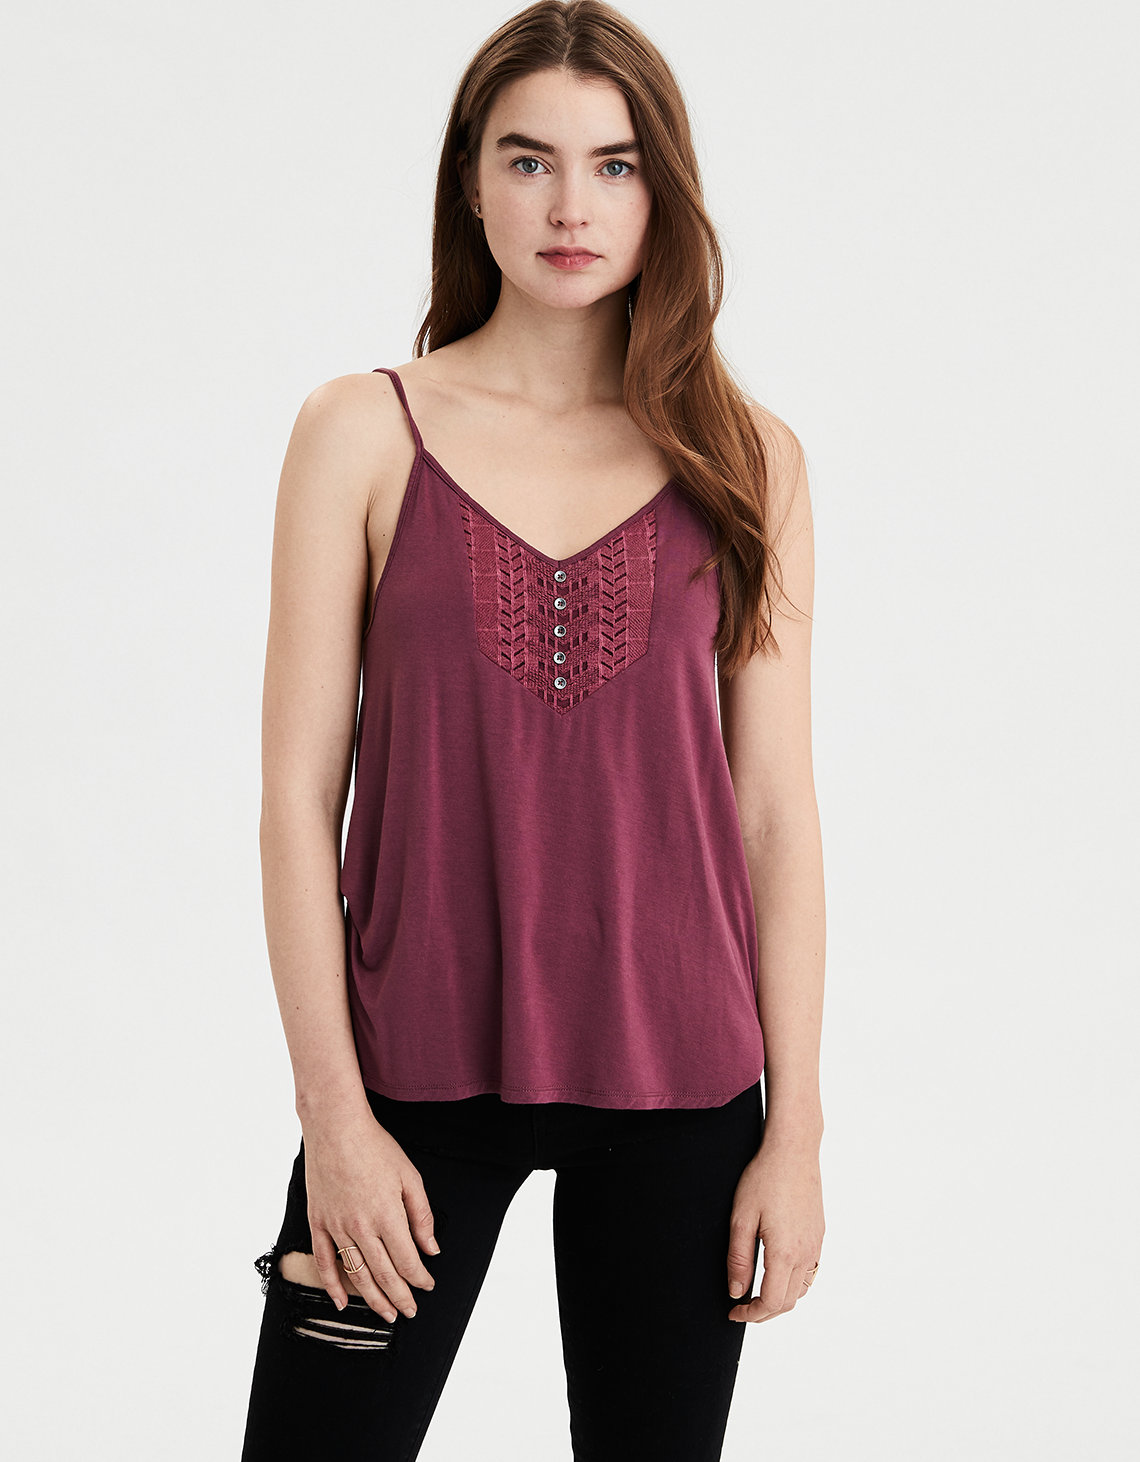 d8271cc71bd86 AE Soft   Sexy Lace Top. Placeholder image. Product Image